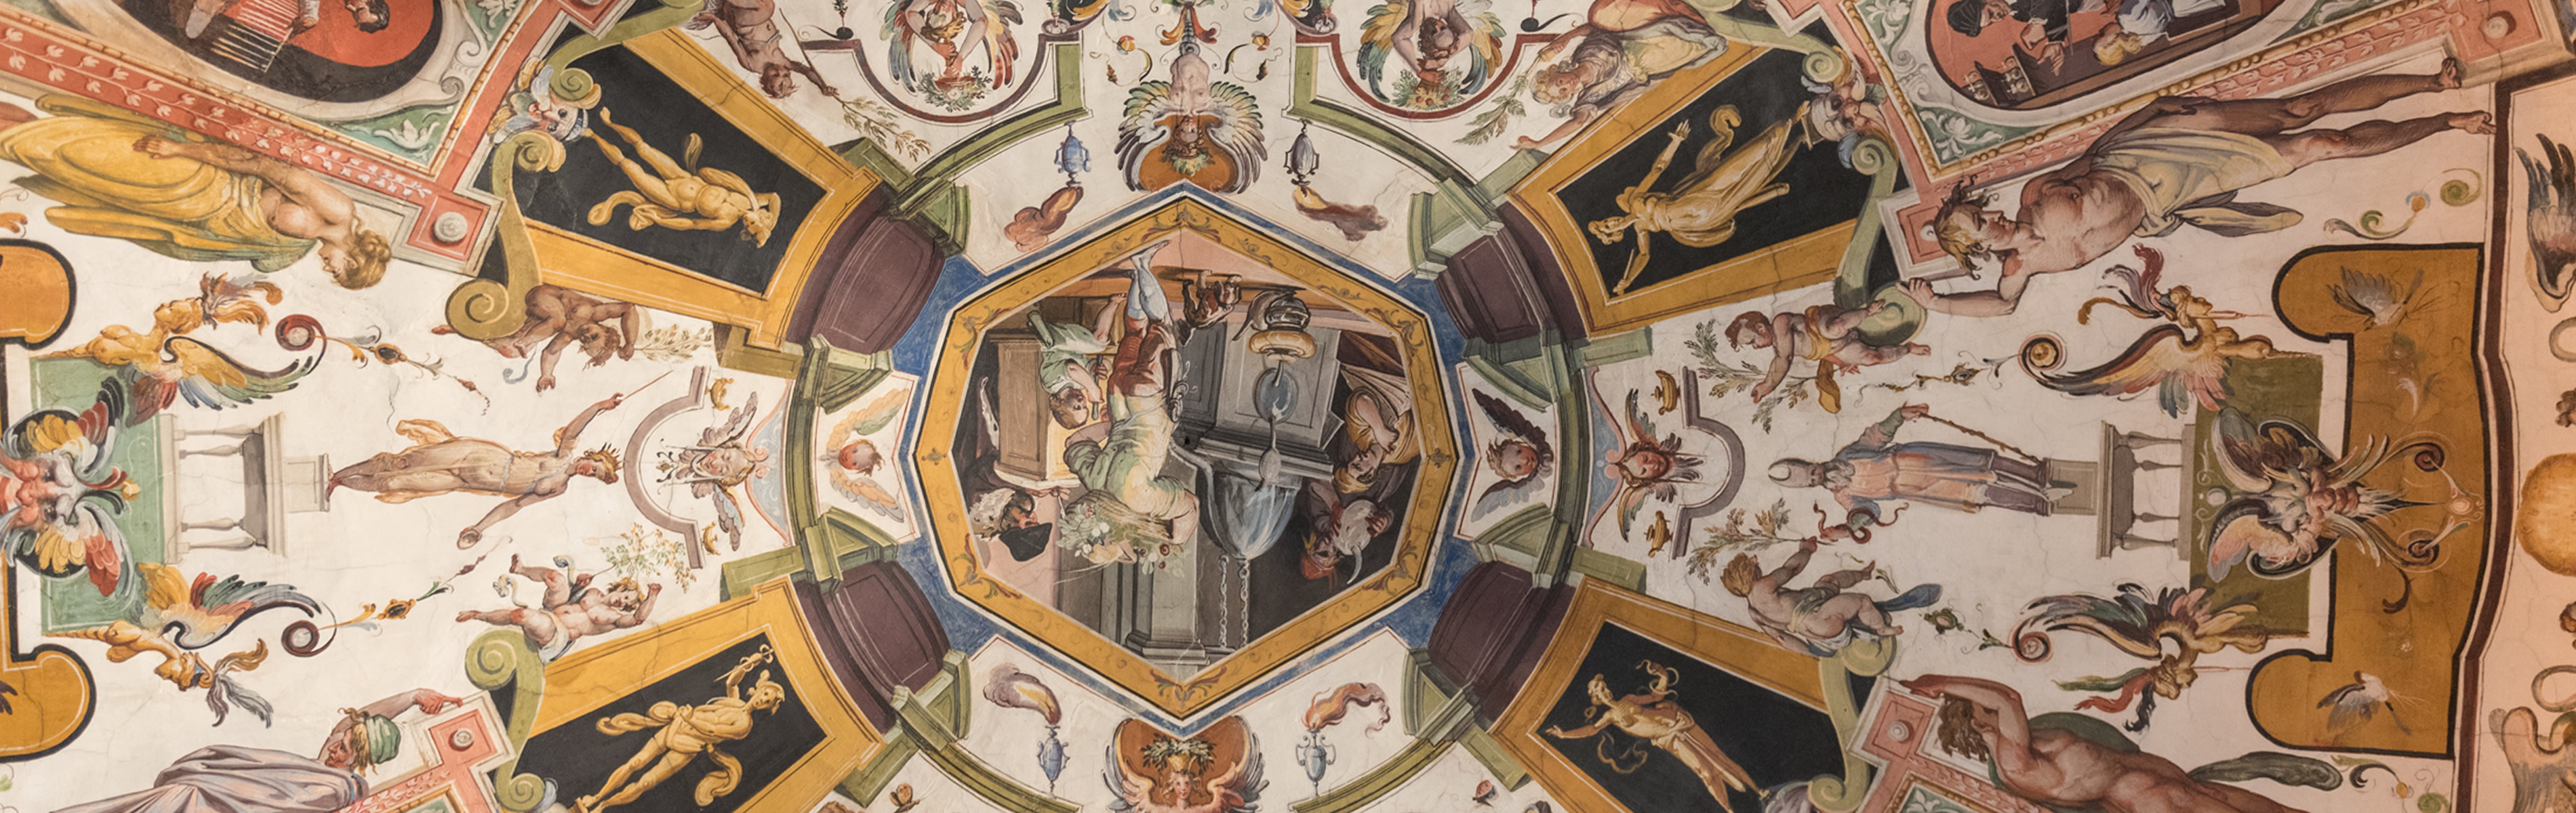 Looking up at the paintings on the ceiling of Florence's Uffizi Gallery